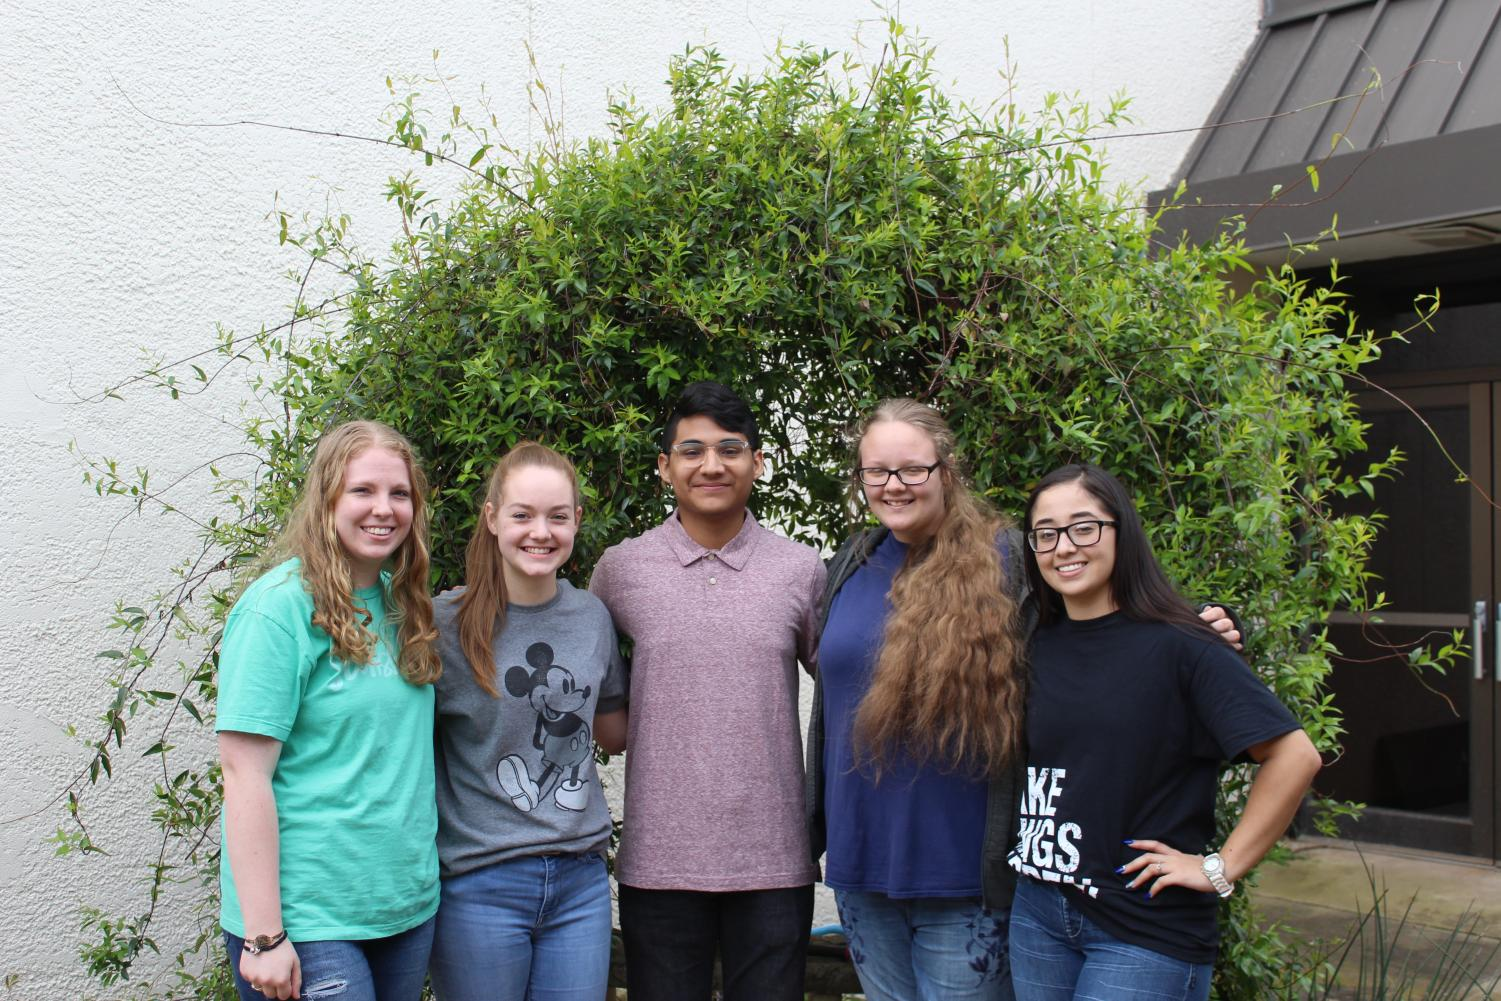 Competing in State UIL Academics on May 3: Erin Rachel, Anna Kaye Williams, Noe Soto, Abbie Cunningham, Naydelin Espinoza.